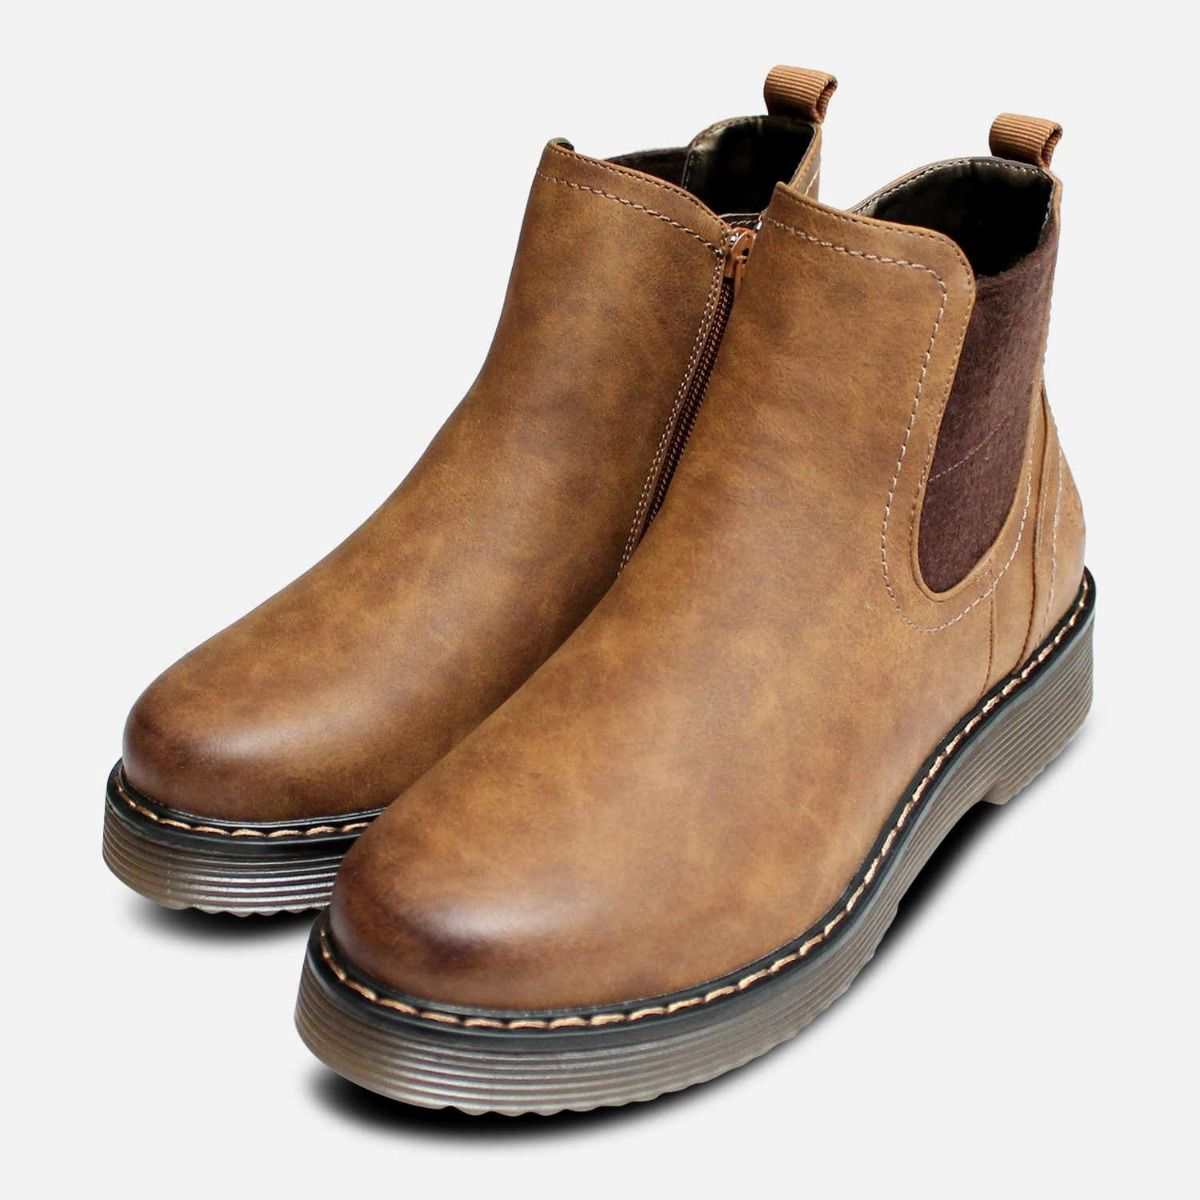 Slip On Chelsea Boots in Rustic Brown